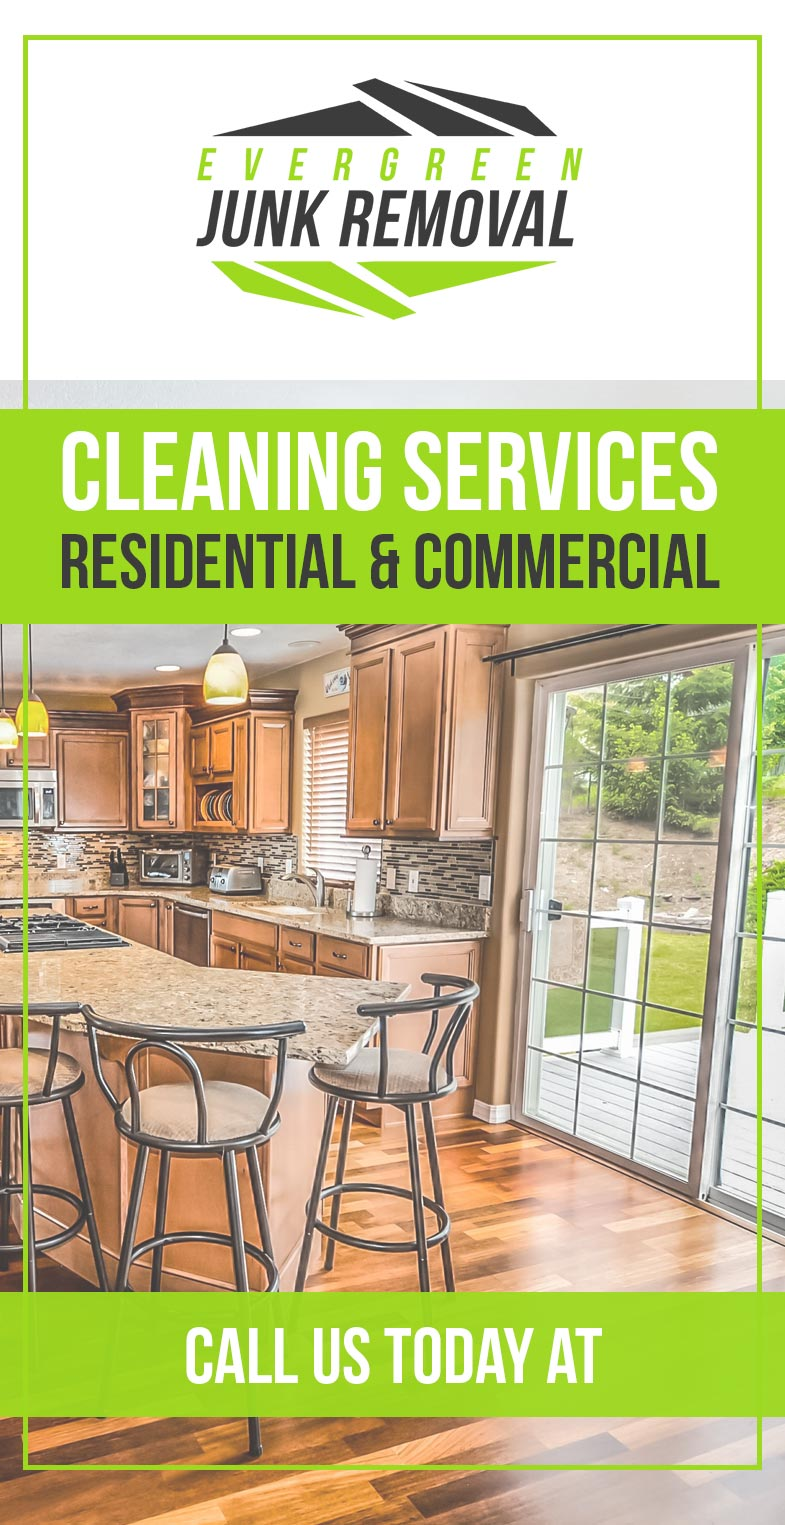 Lake Worth Maid Services